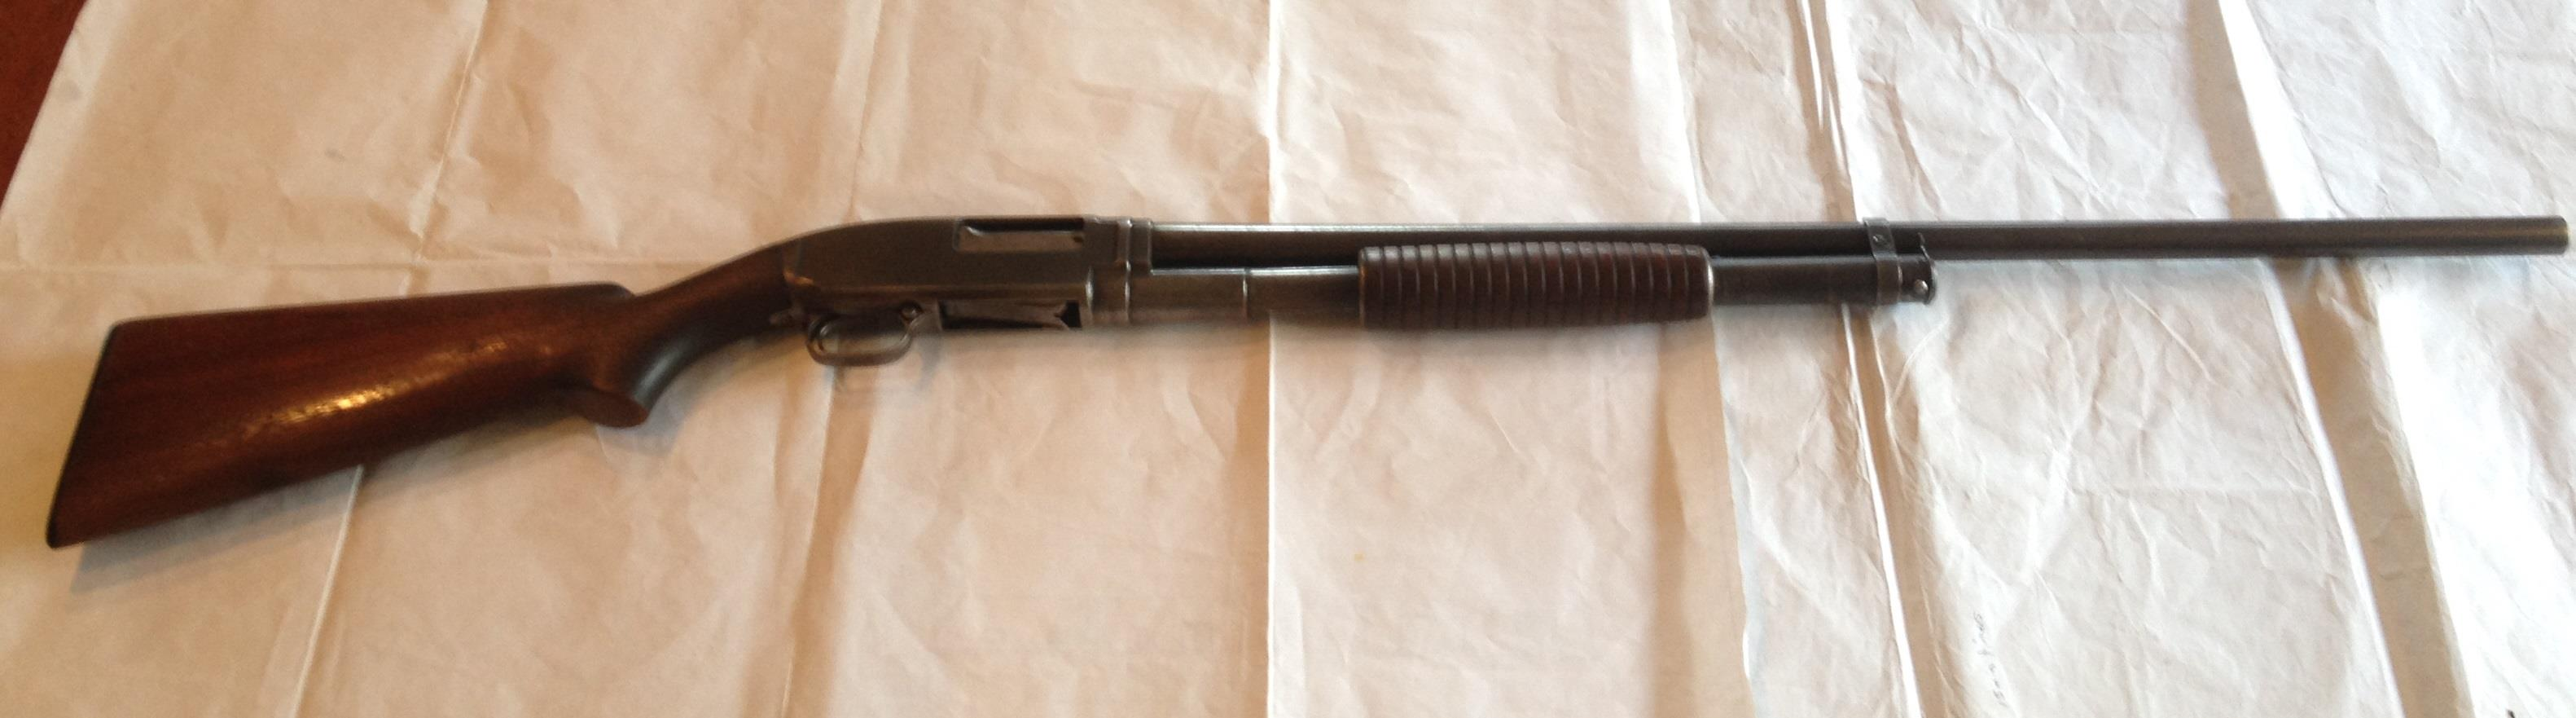 Winchester Model 12 pump 1940's vintage for sale